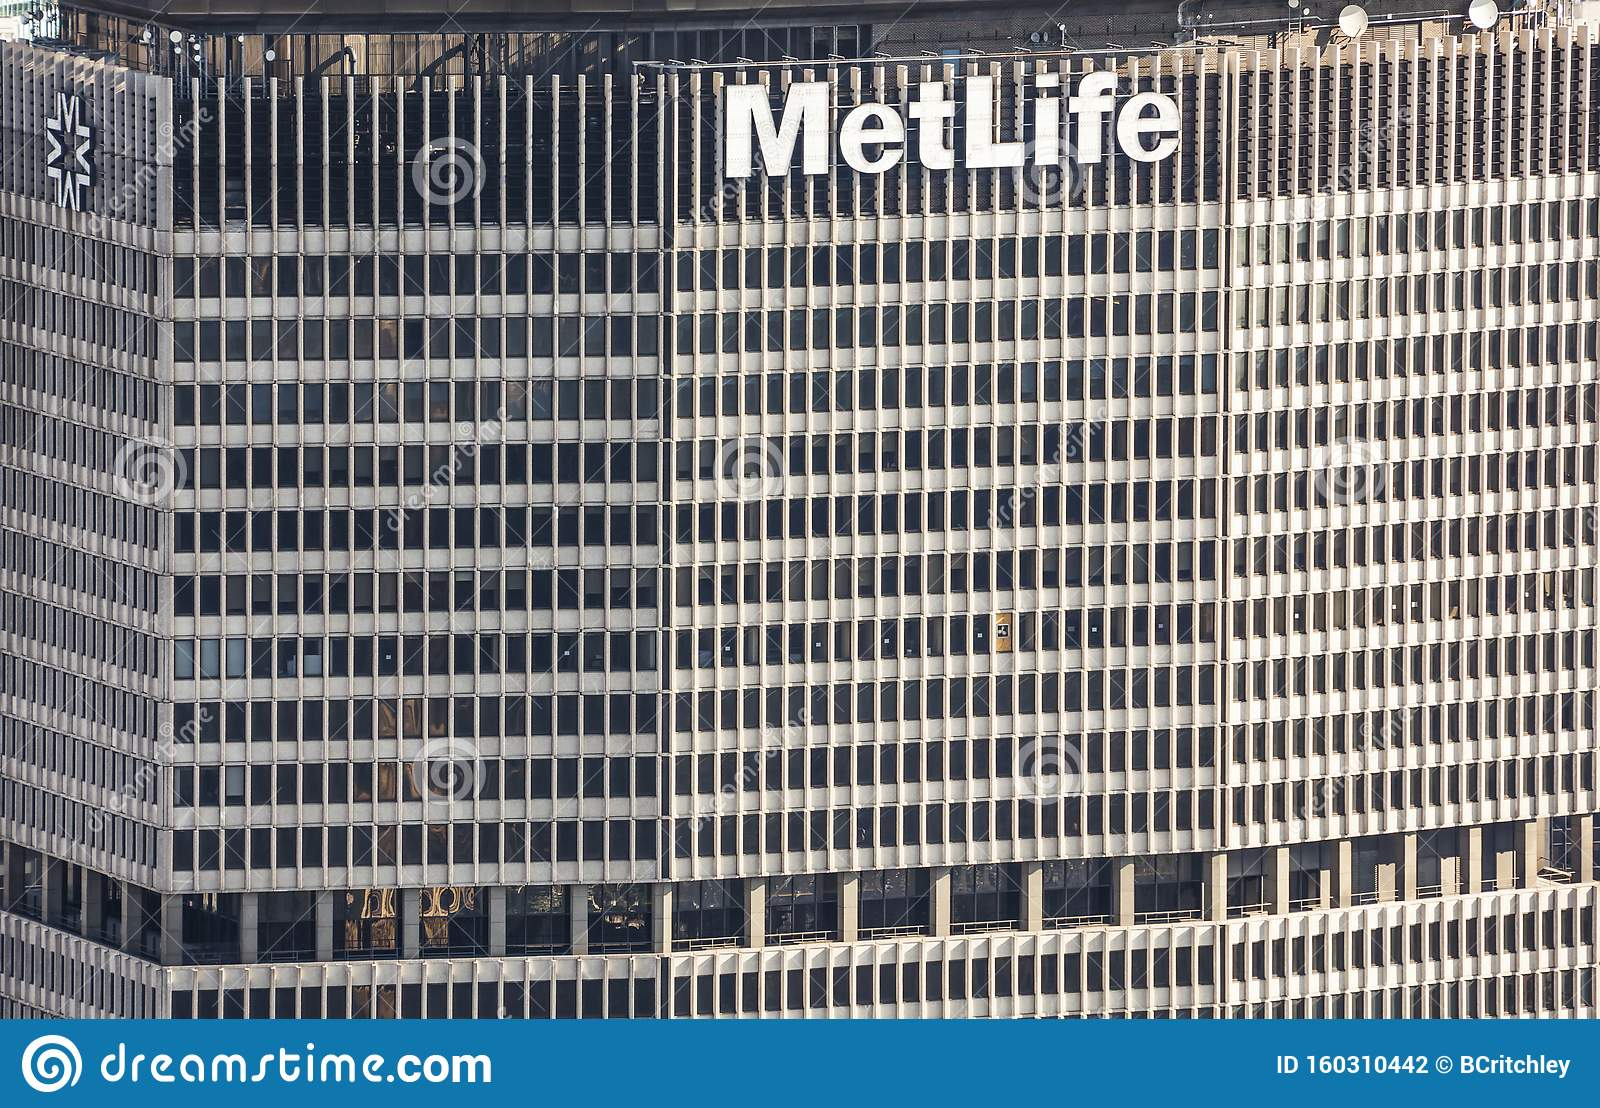 10 Metlife Photos   Free & Royalty Free Stock Photos from Dreamstime